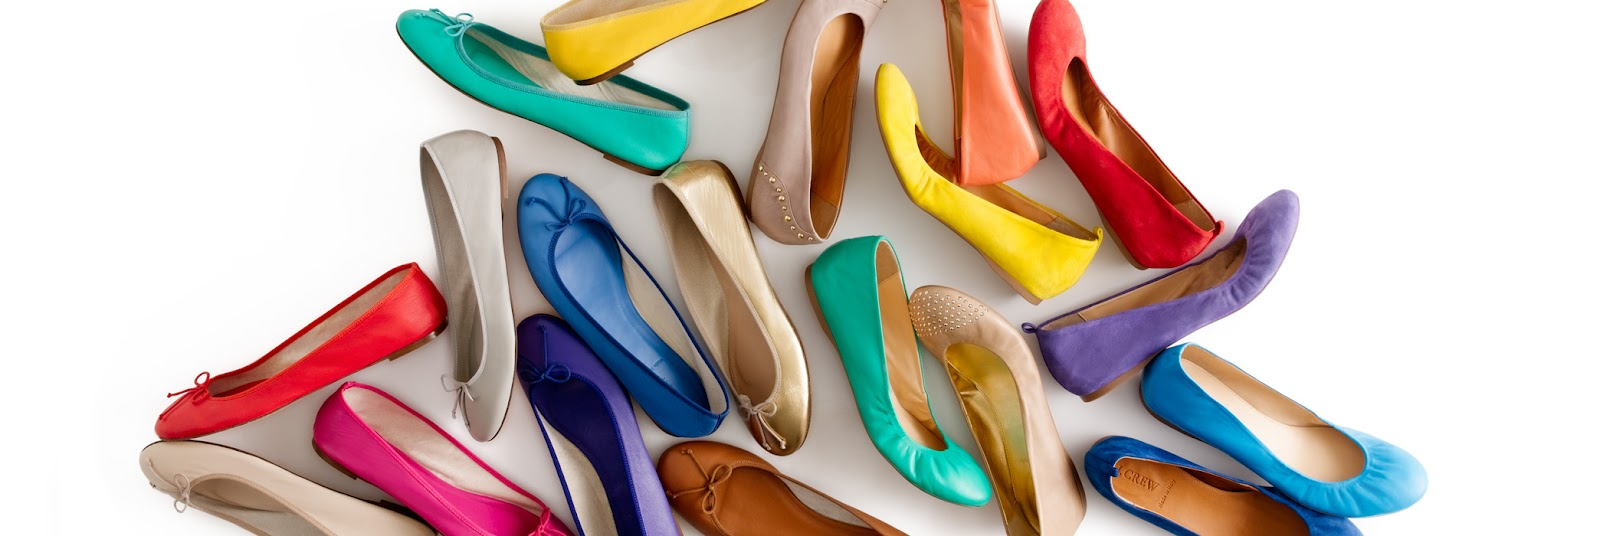 J Crew's Ballet Boutique Has Every Color Under The Sun